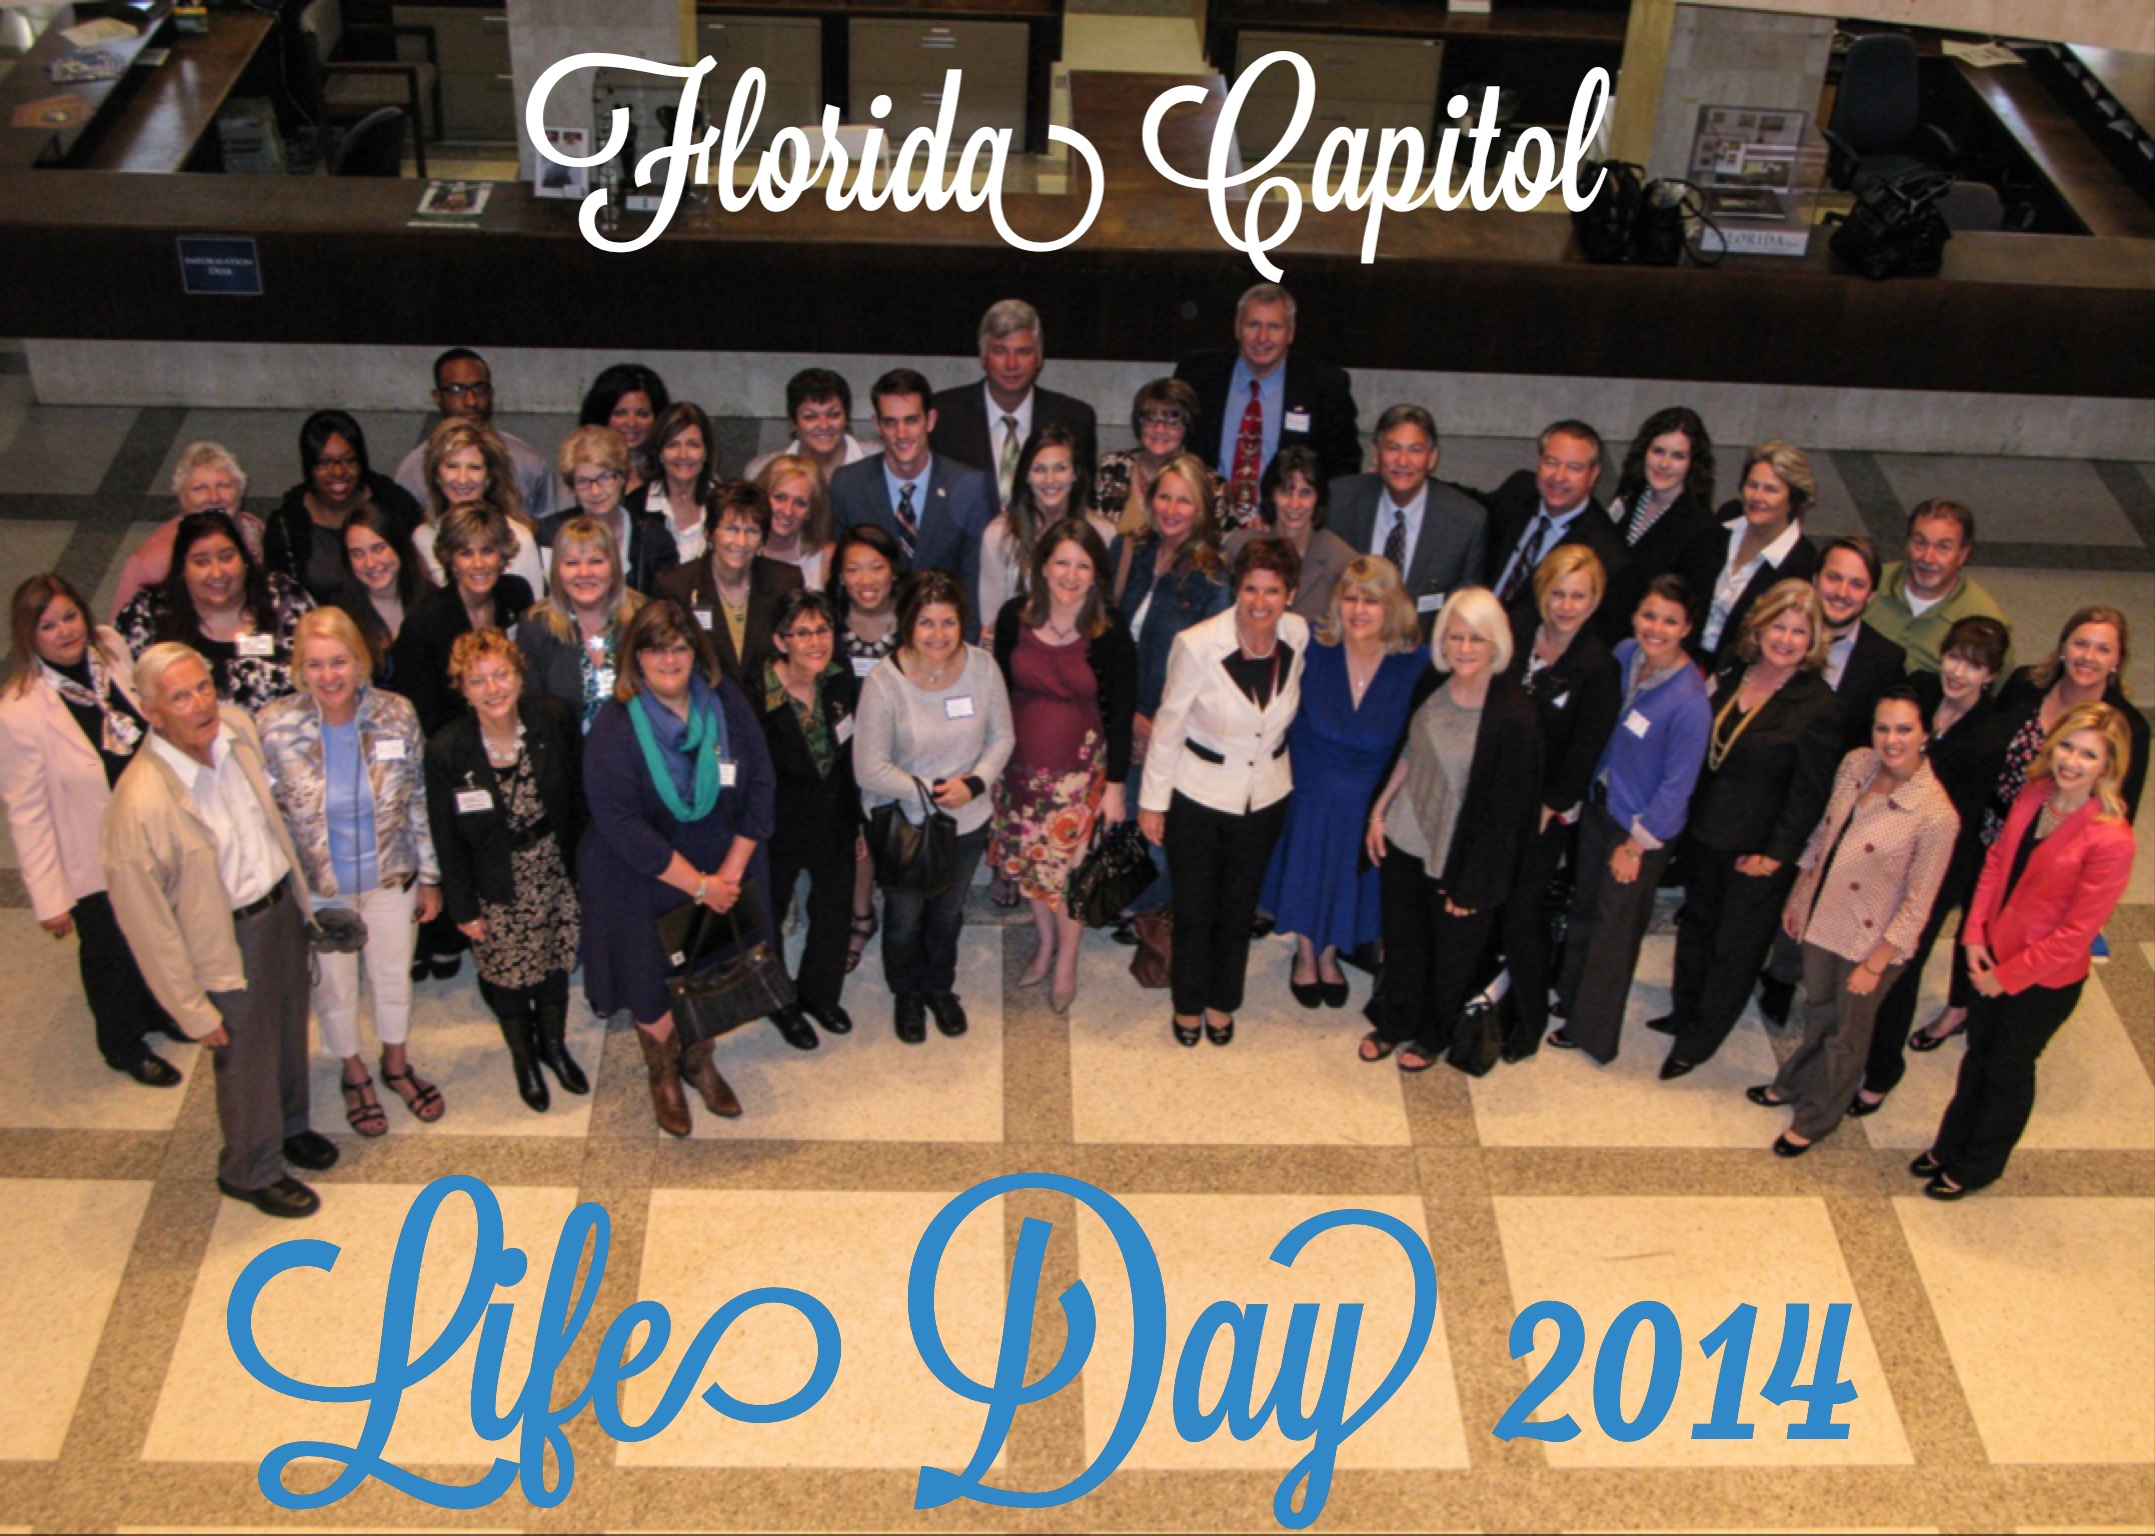 Life Day 2014